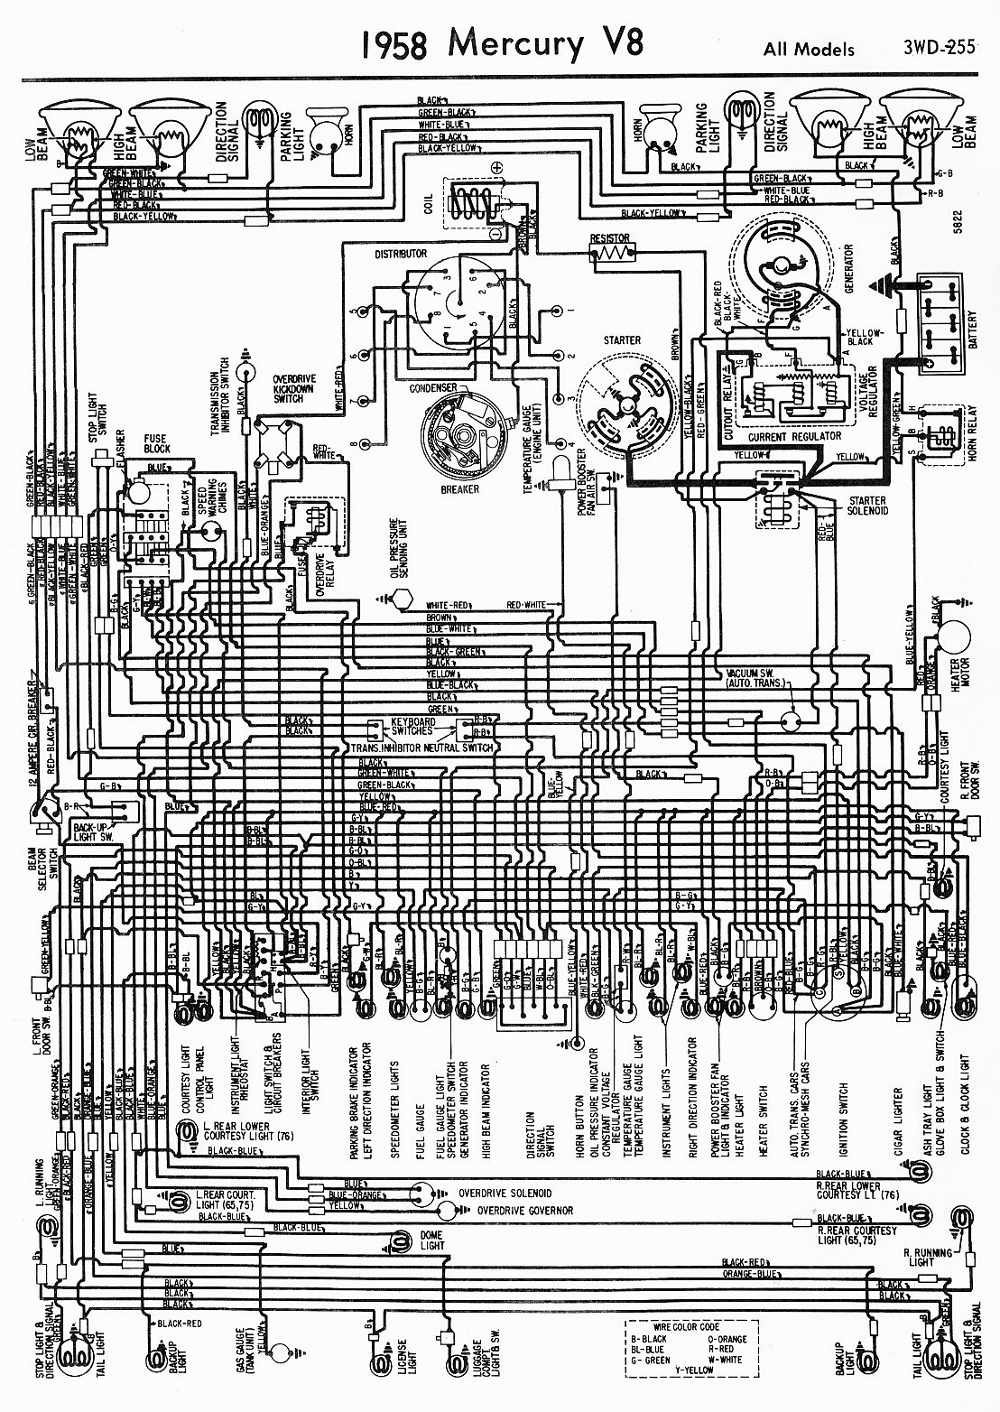 Wiring Diagrams 911 Mercury V8 All Models Wiring Diagram